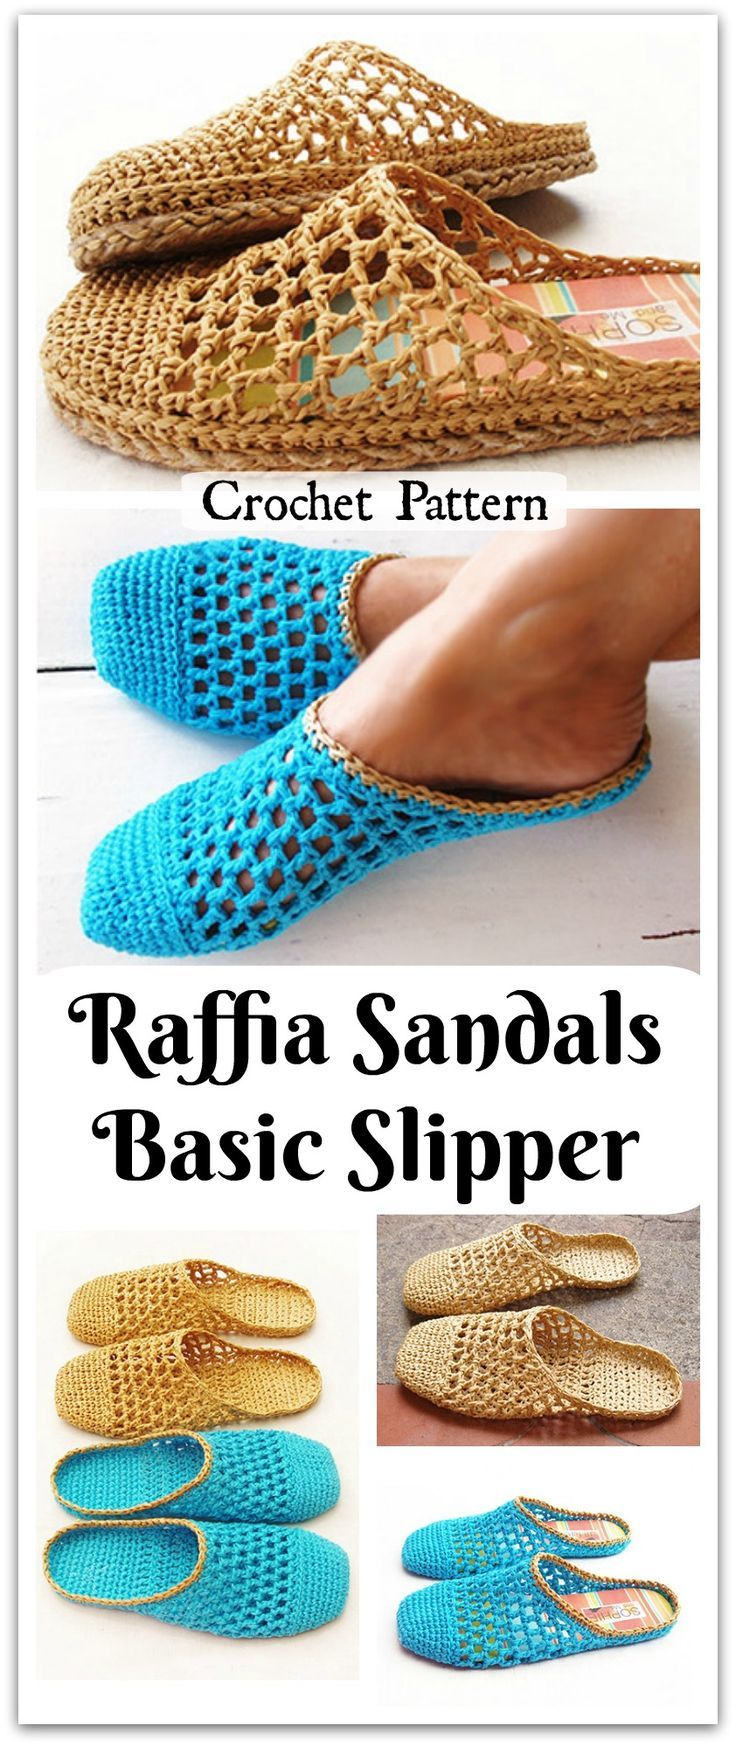 These cute slippers are made using Raffia, a light and strong fiber. It is perfect for footwear, not as soft, pliable or stretchy as normal yarn but amazingly comfortable. #ad #affiliate #crochet #pattern